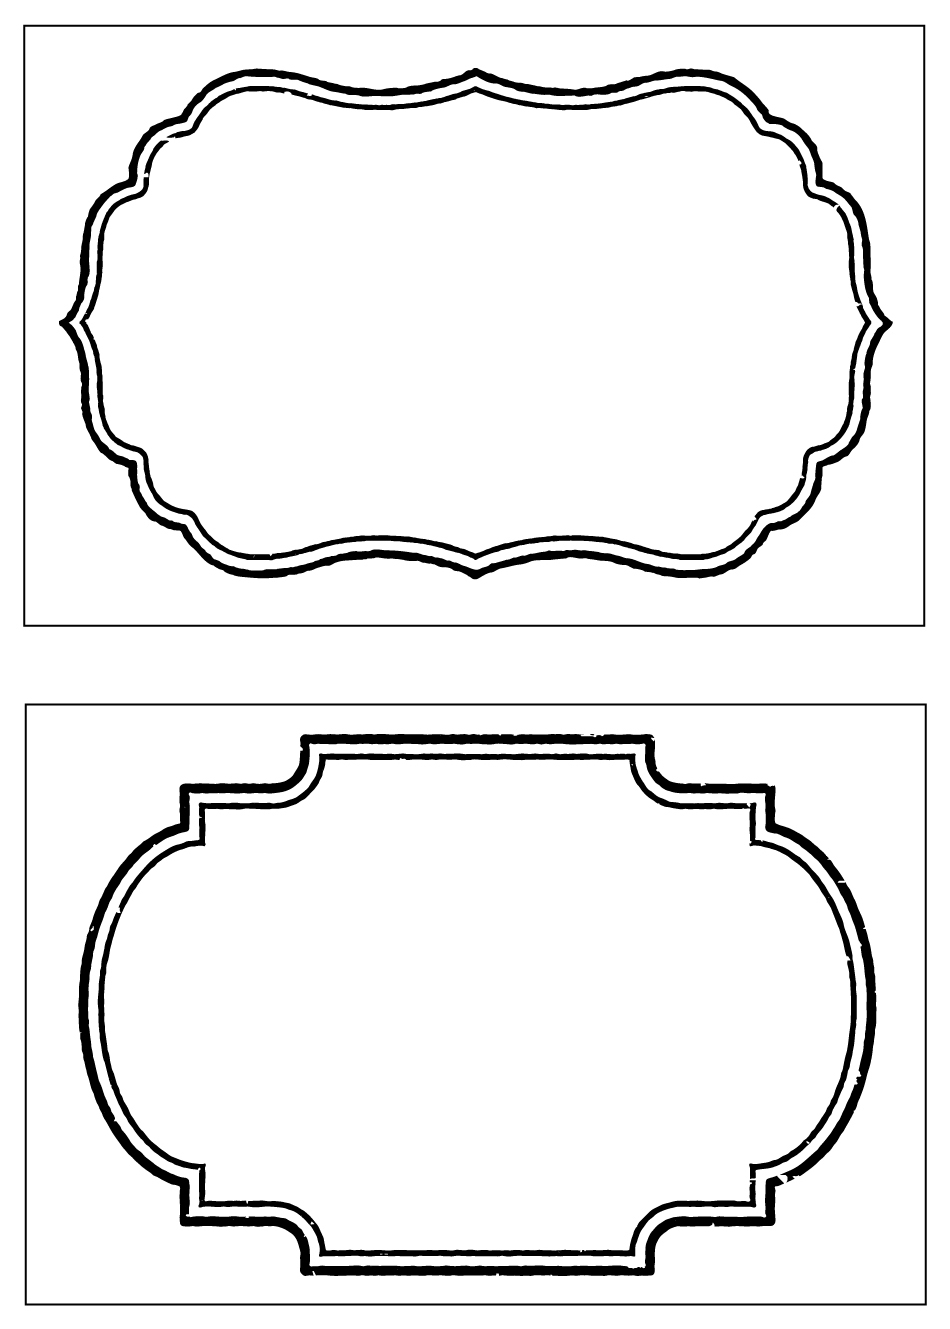 Party Basics: Food Labels Clip Art Library